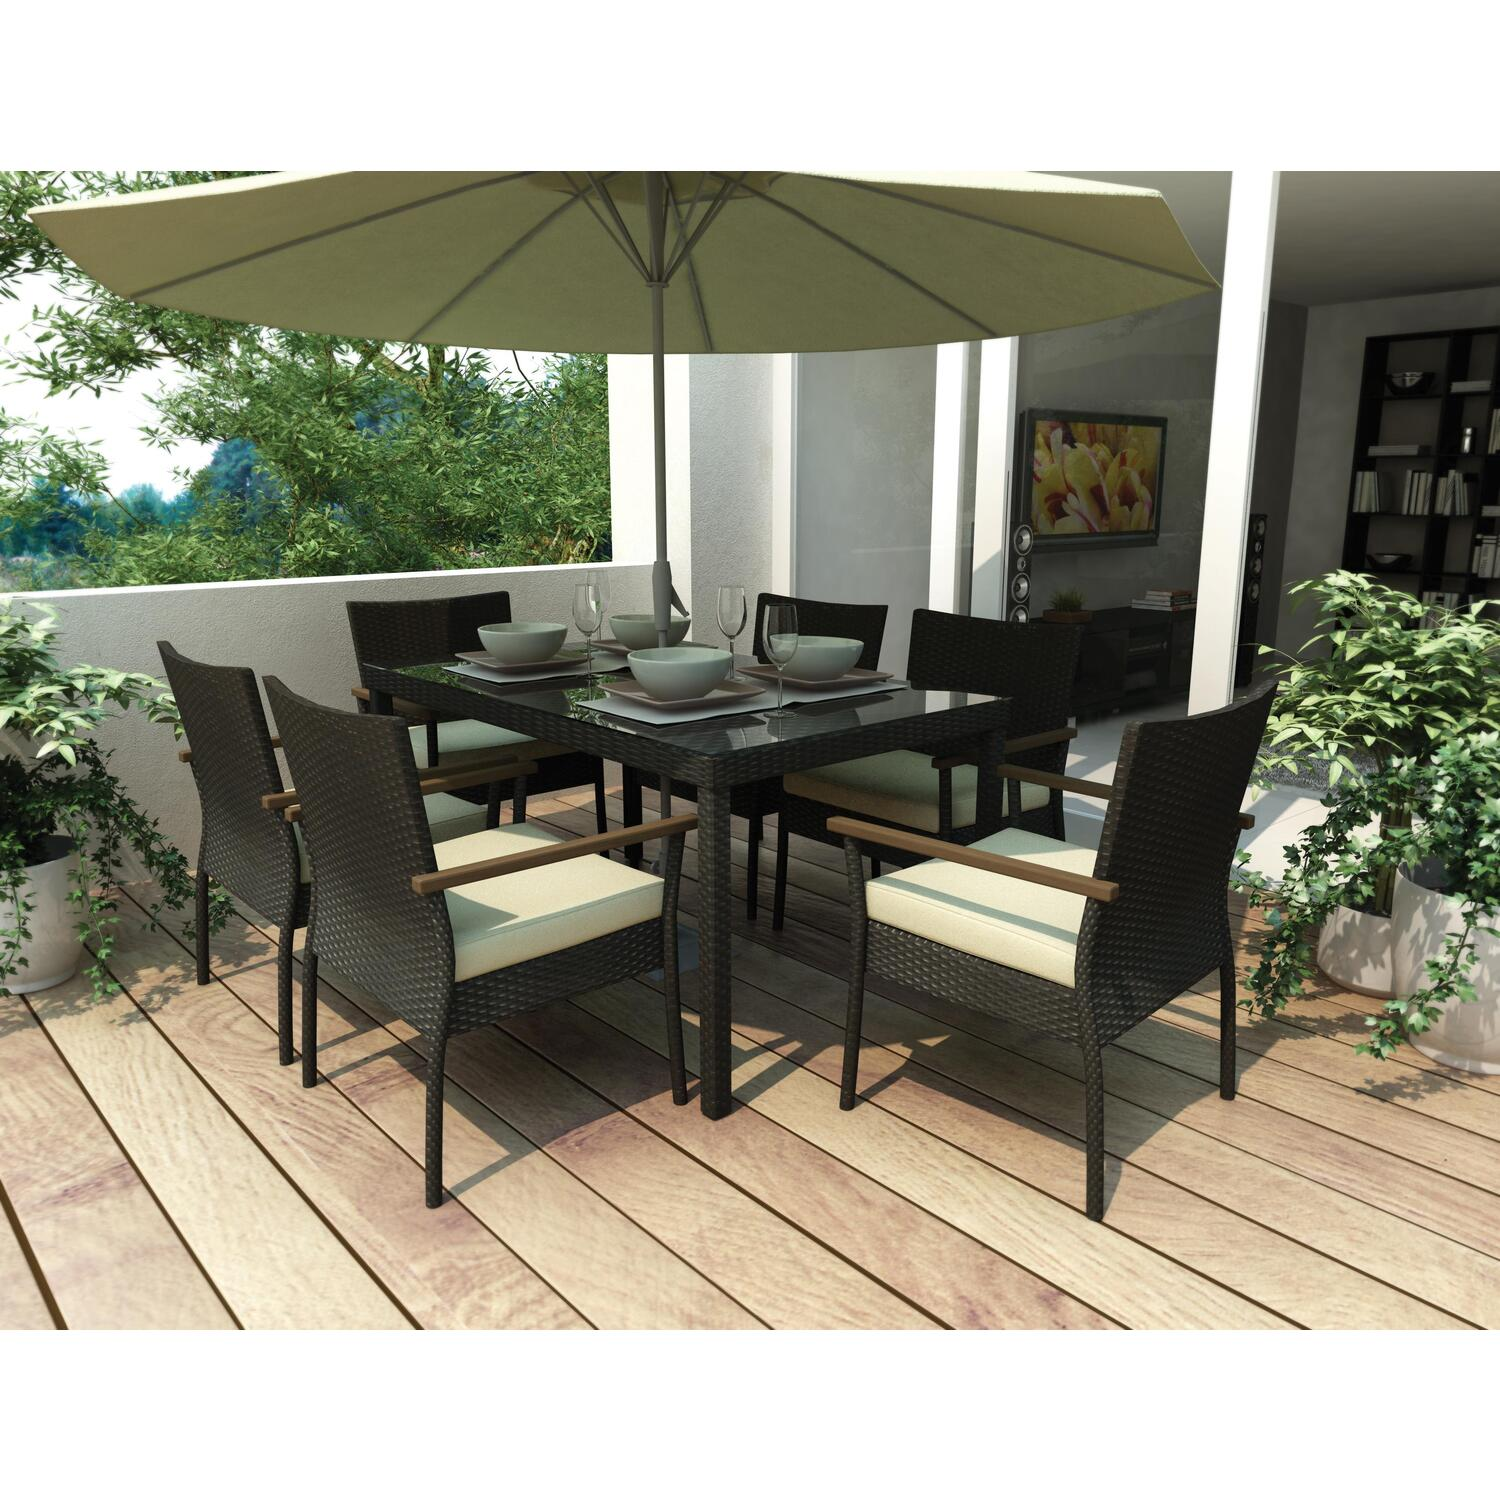 Patio dinning sets patio design ideas for Outdoor patio dining